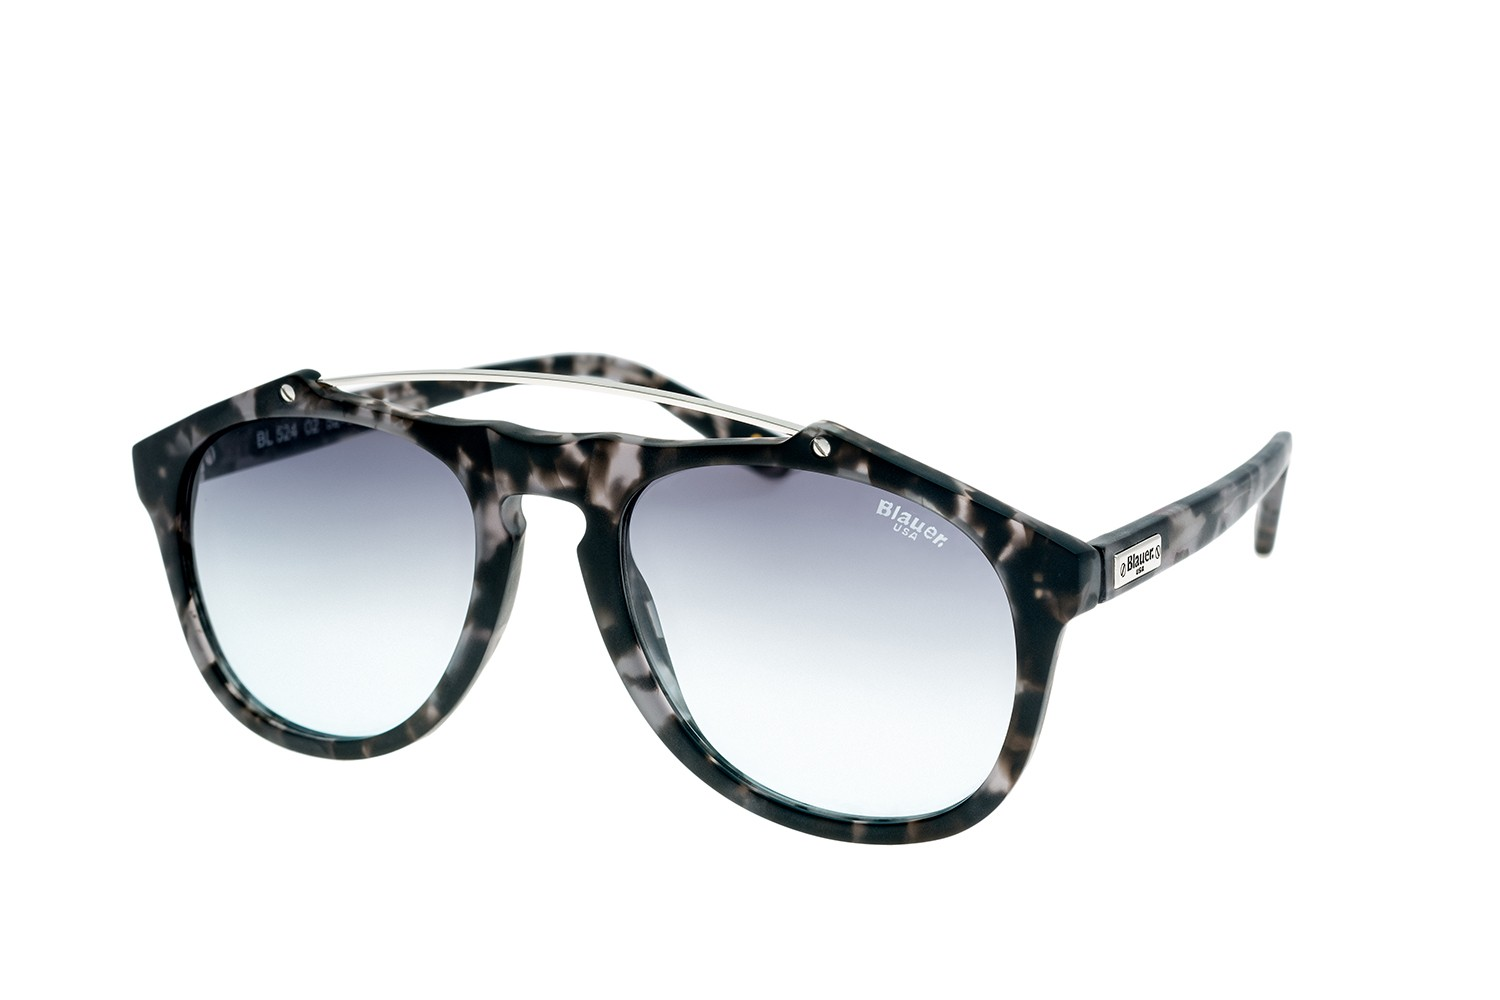 7448762f3d5 Sunglasses Collection - Buy Online